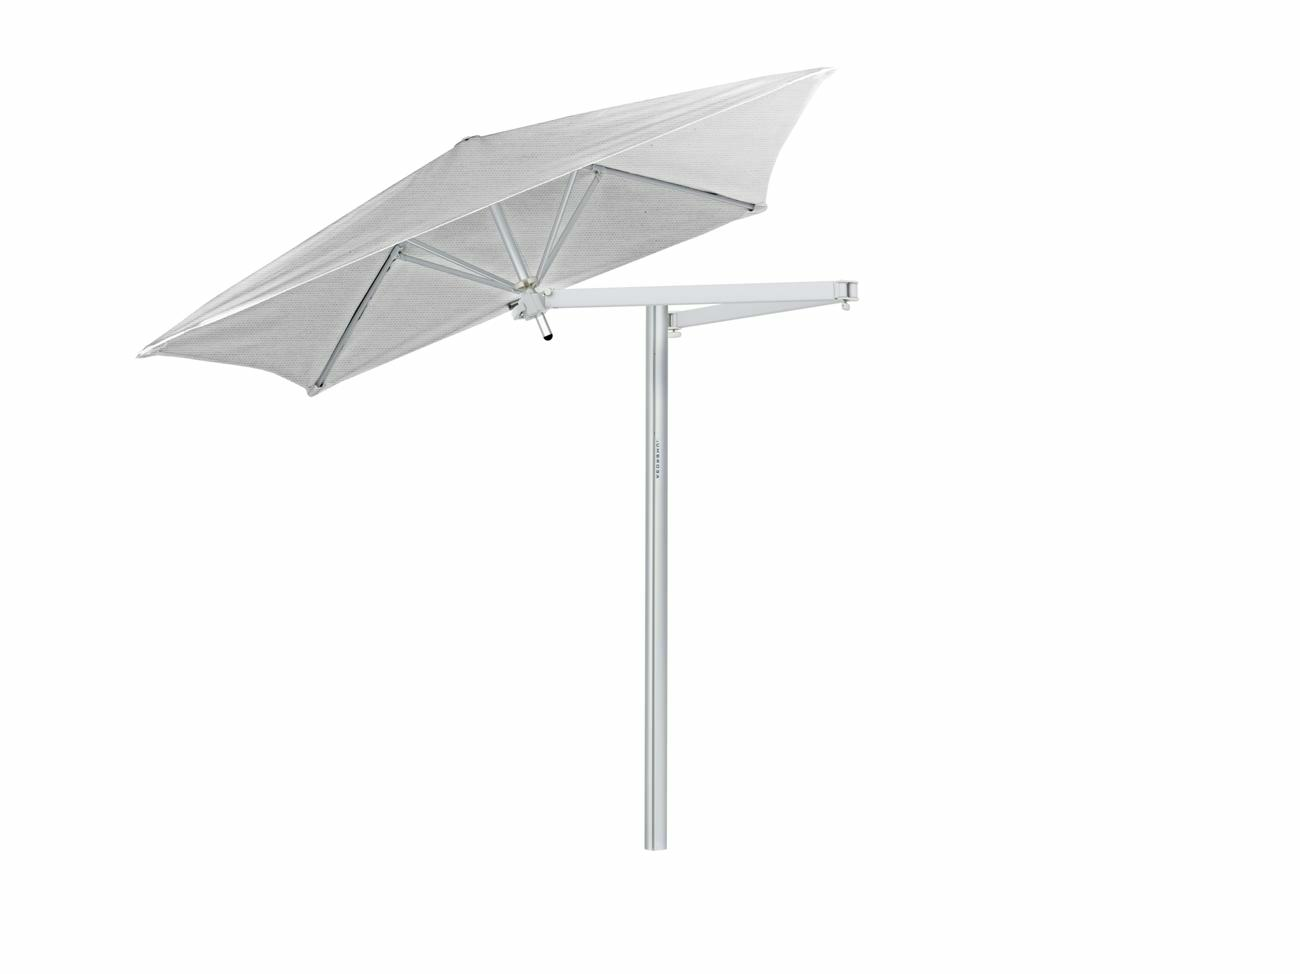 Paraflex cantilever umbrella square 1,9 m with Marble fabric and a Neo arm